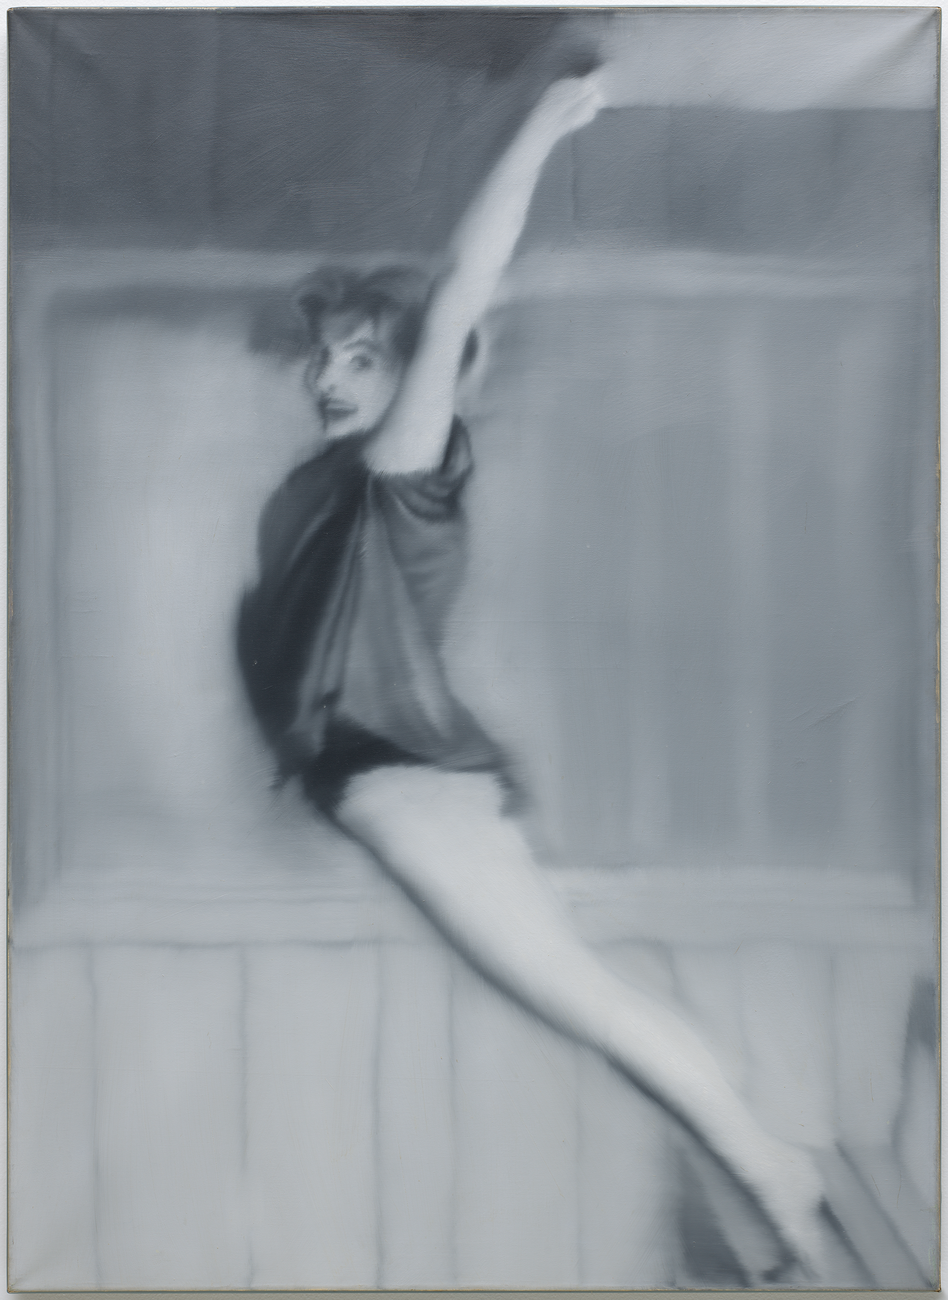 A black and white painting of a smiling gymnast mid-leap